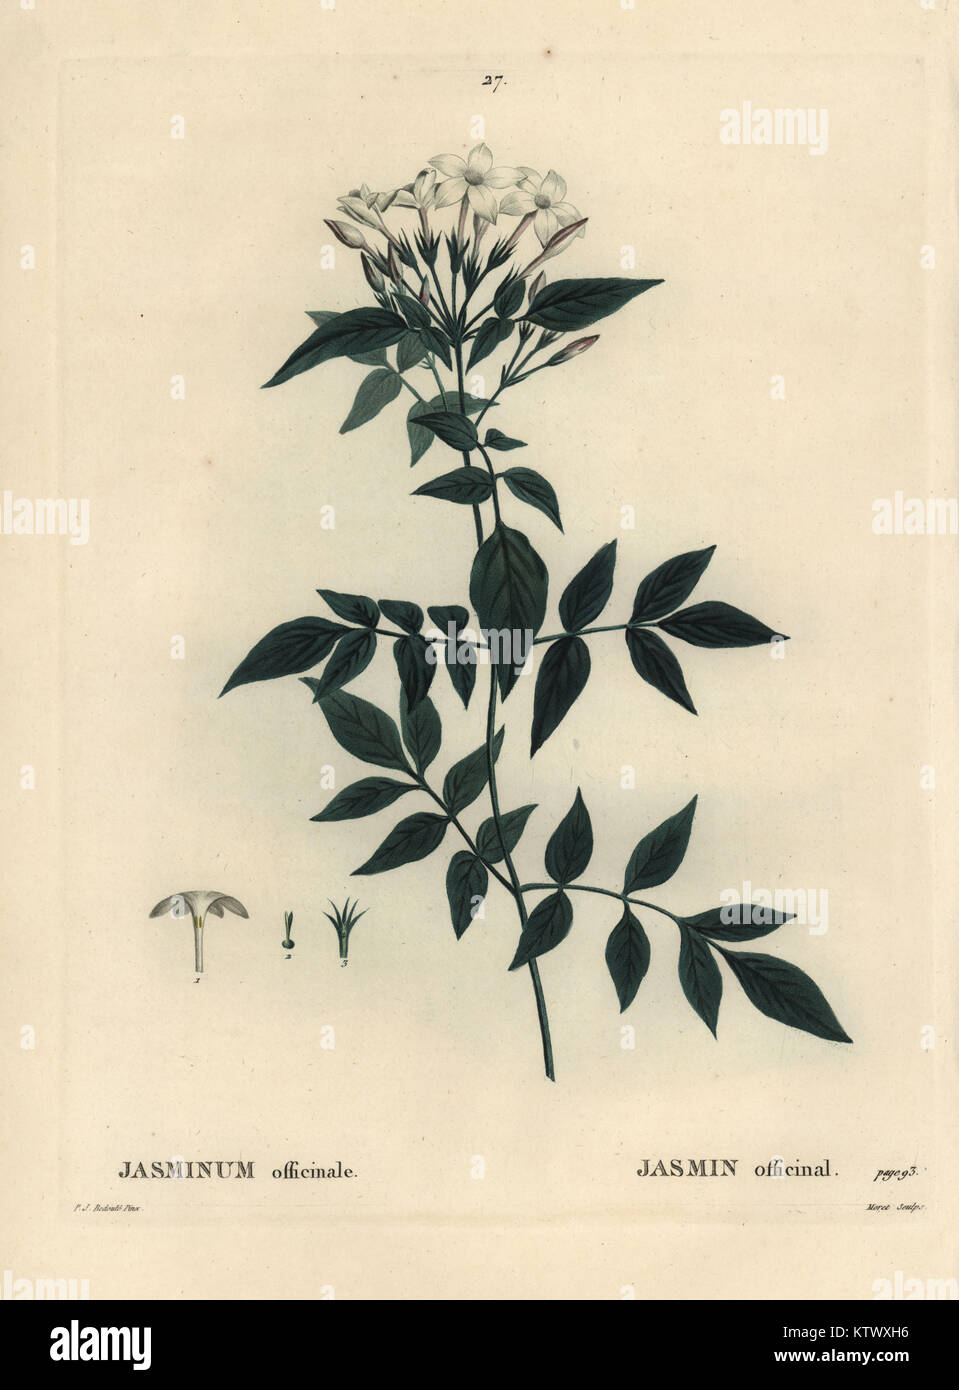 Jasmine, Jasminum officinale. Handcoloured stipple engraving by Moret after an illustration by Pierre-Joseph Redoute - Stock Image